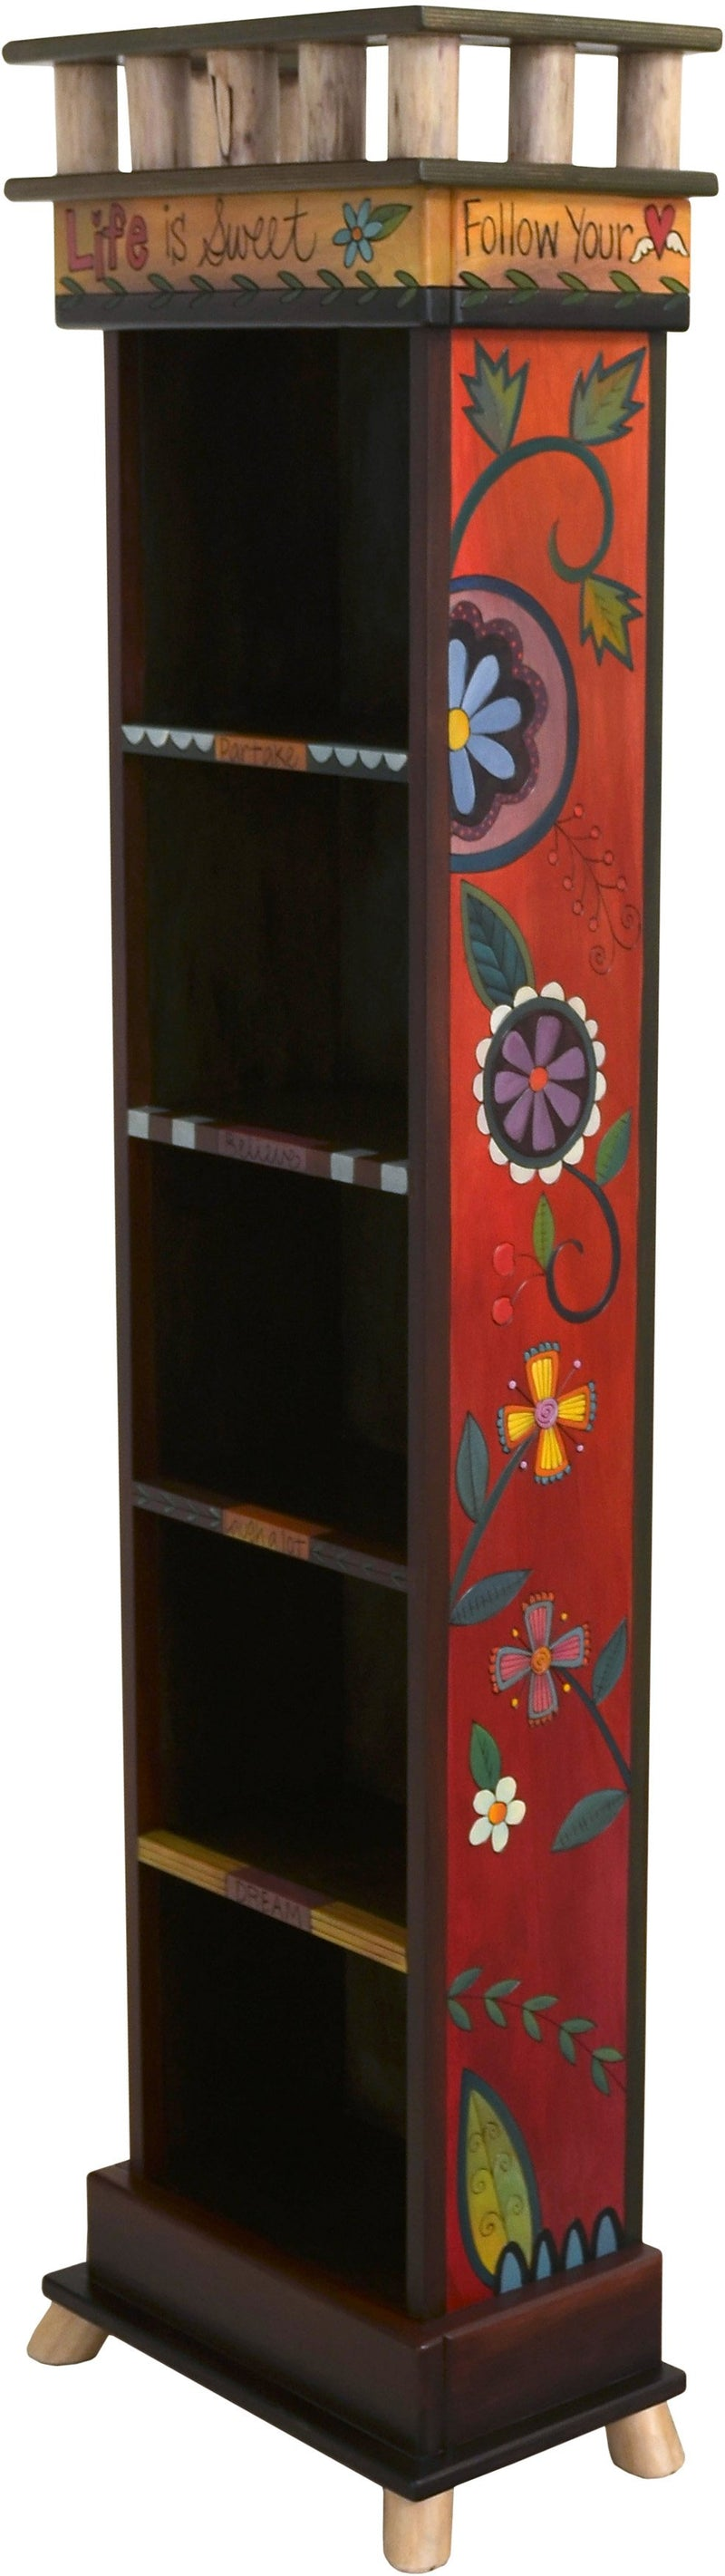 Tall Bookcase –  Lovely and warm bookcase with floral motifs painted in rich hues